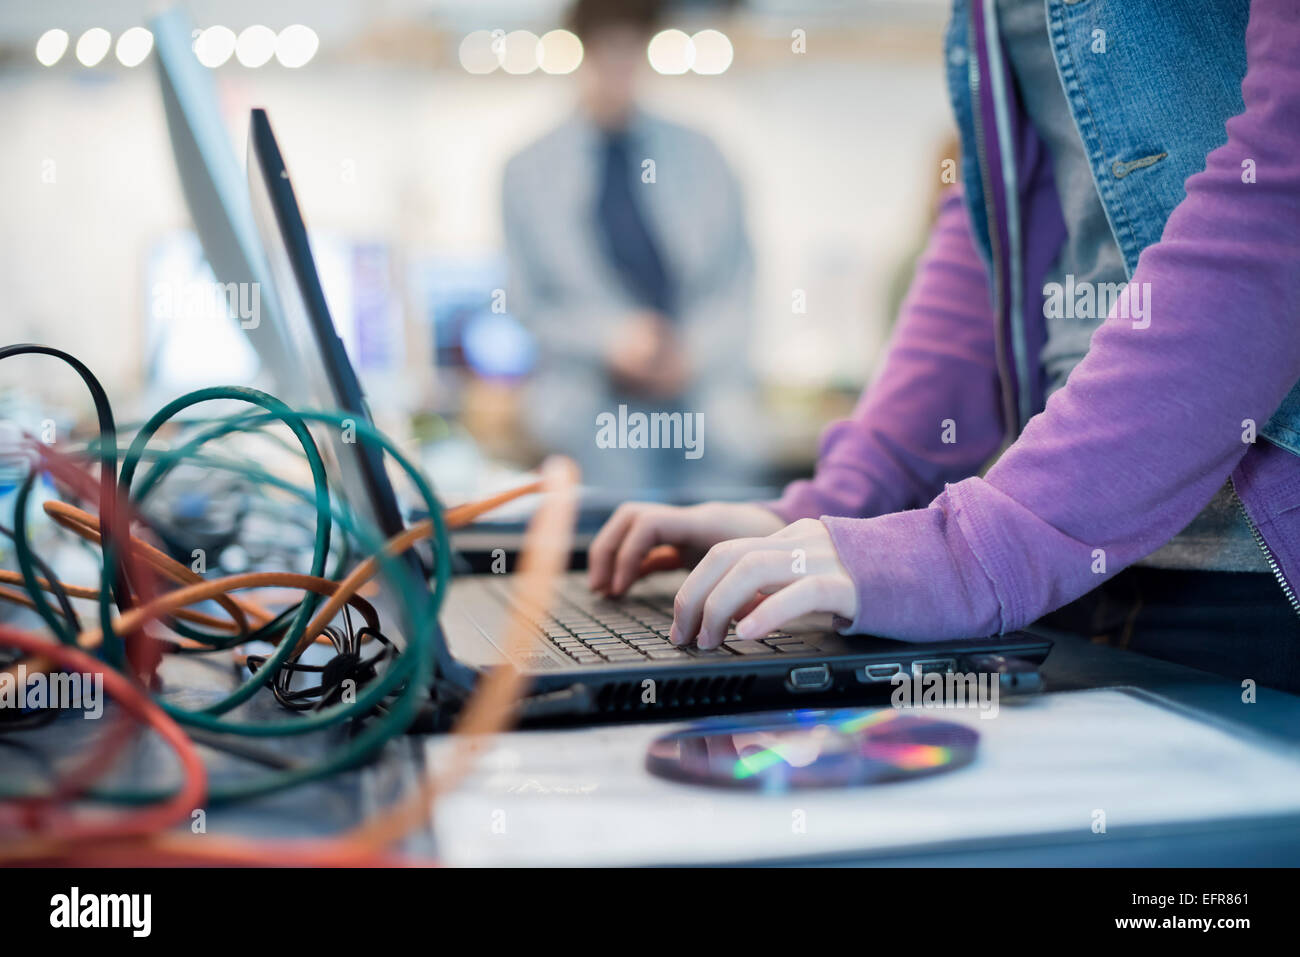 A person using a laptop computer. Disc and wires on the counter. Repair shop. Stock Photo